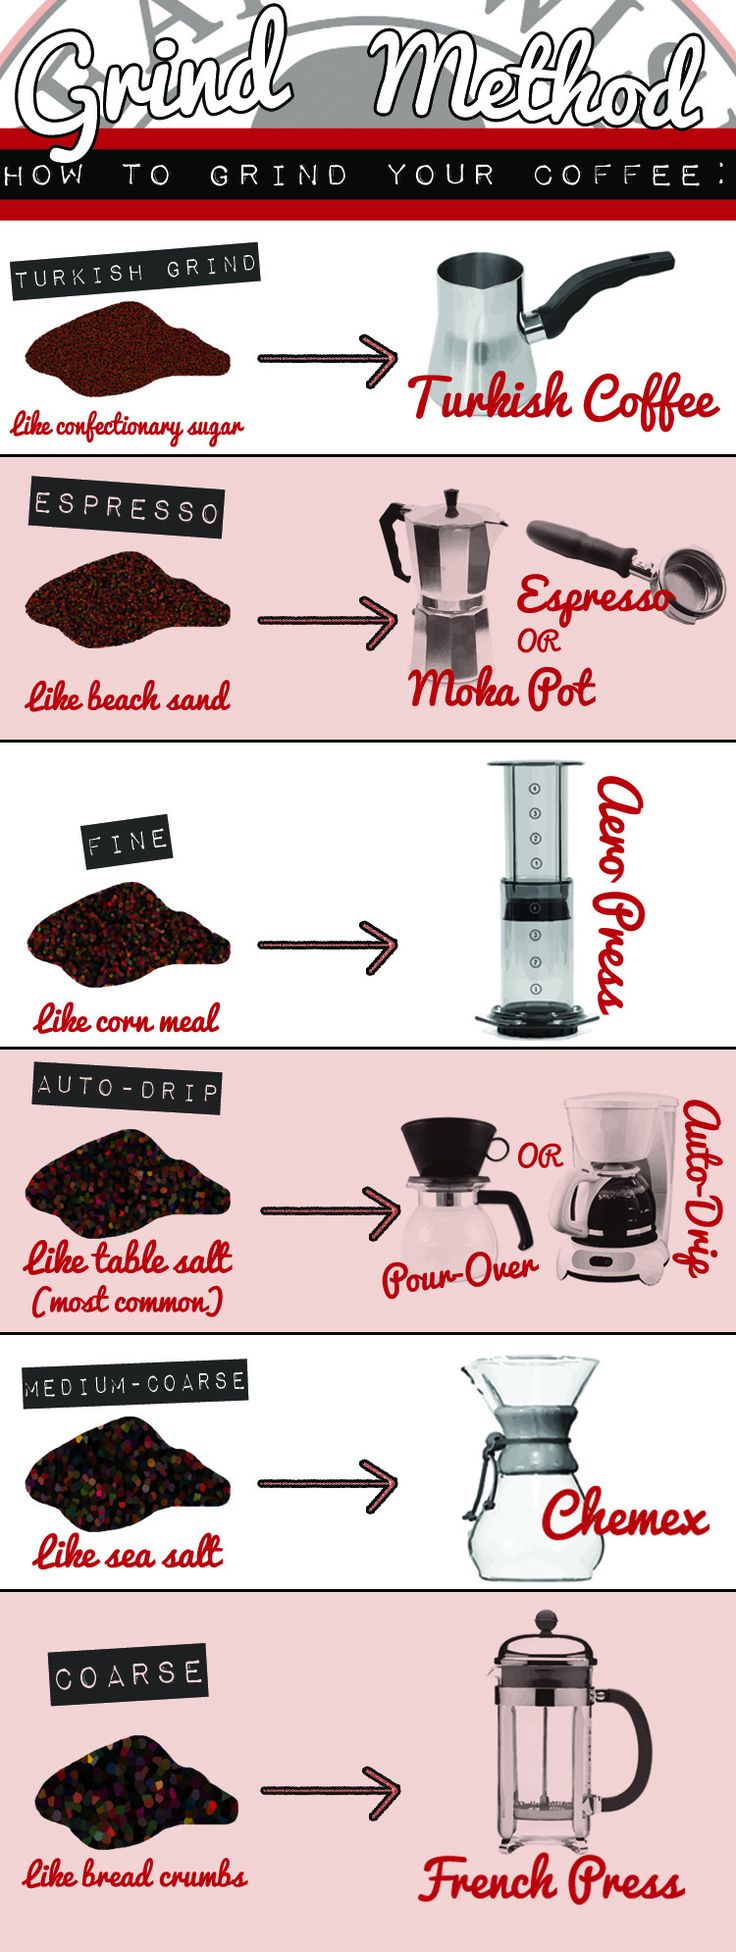 Death Wish Coffee The World's Strongest Coffee Presents: How To Grind Your…